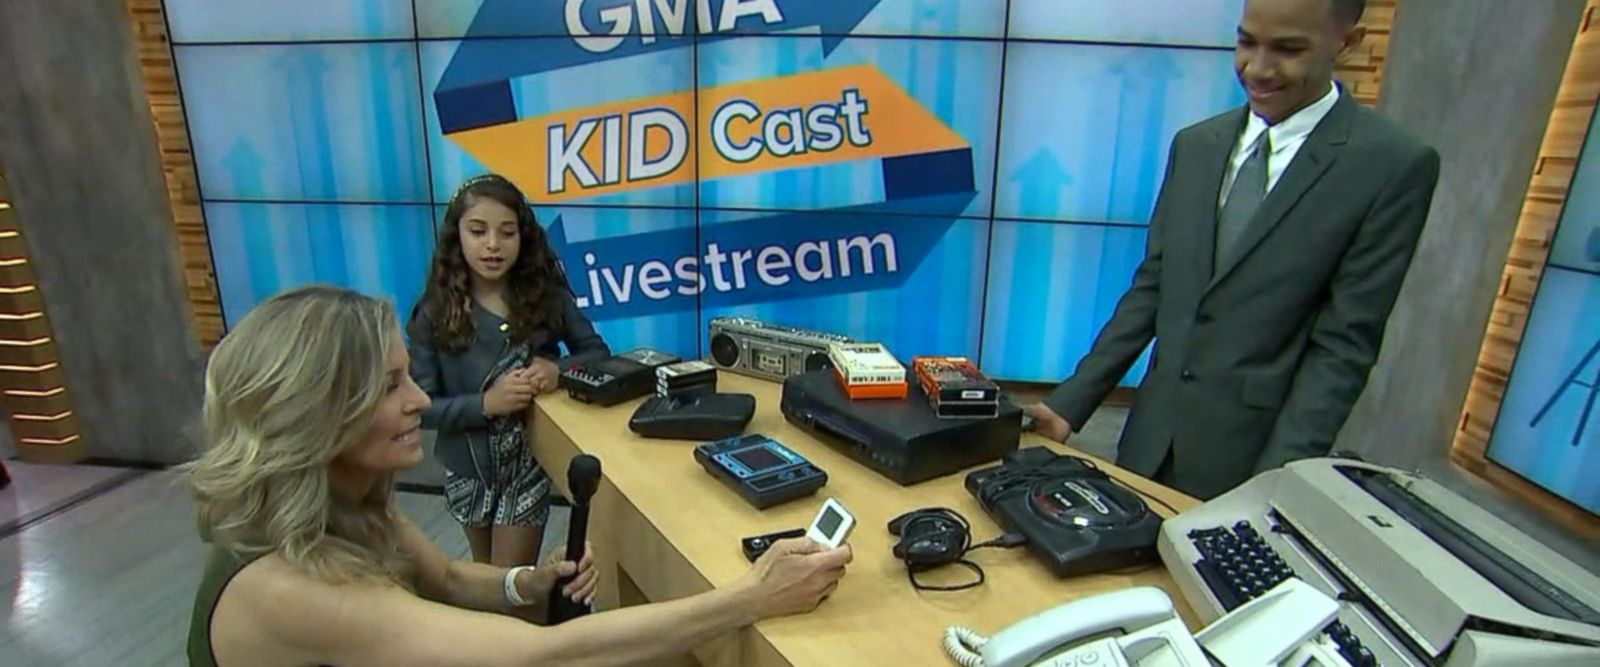 VIDEO: Kids confused by old school technology